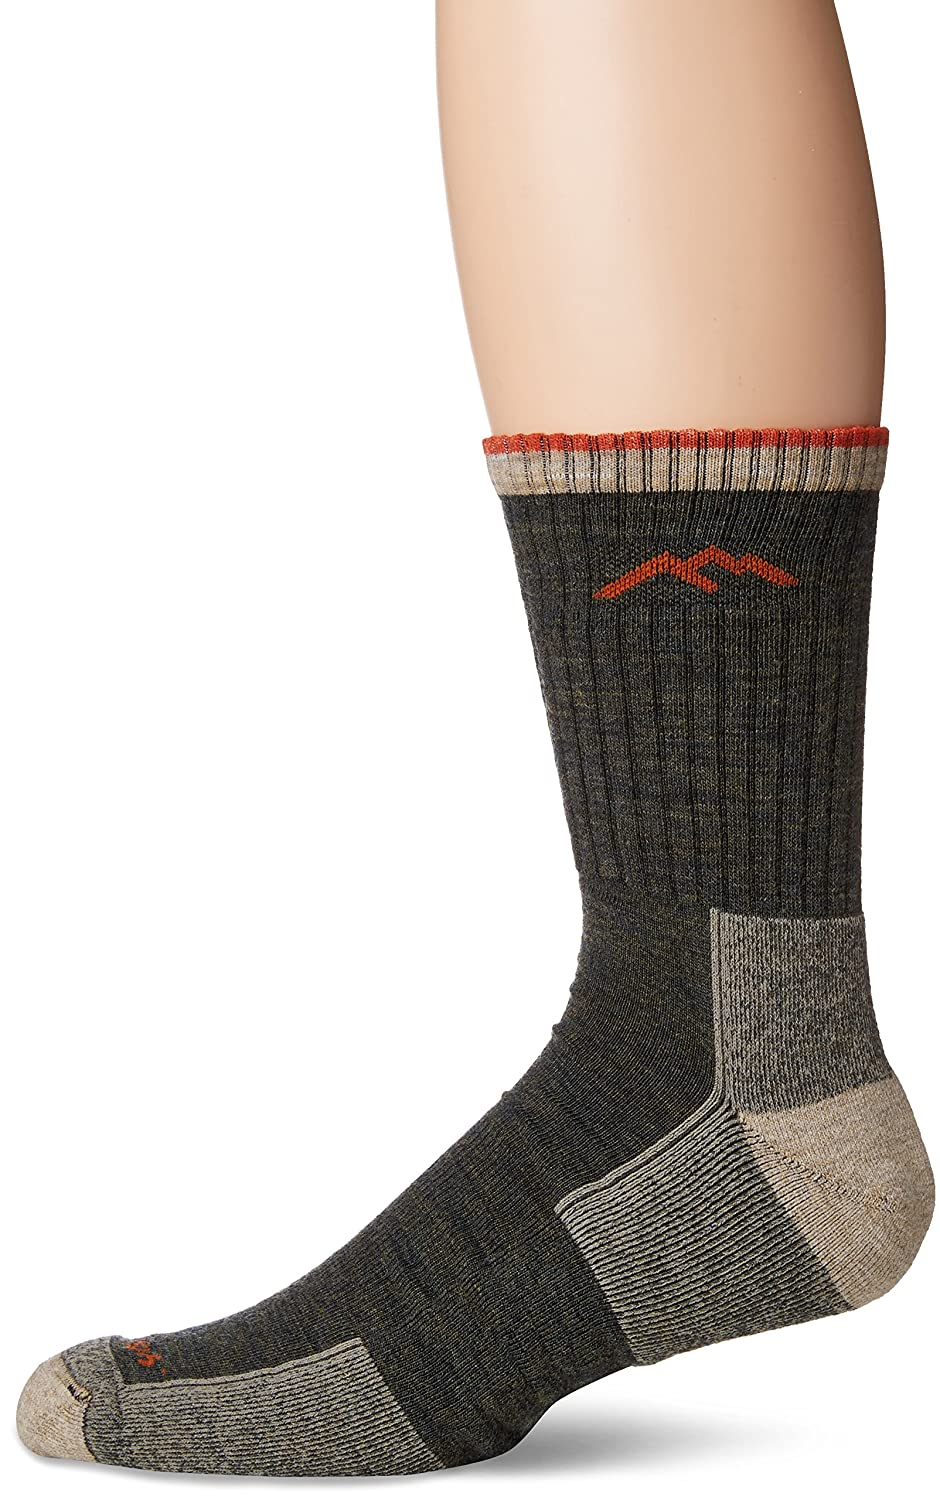 Darn Tough Vermont - best wool socks for winter